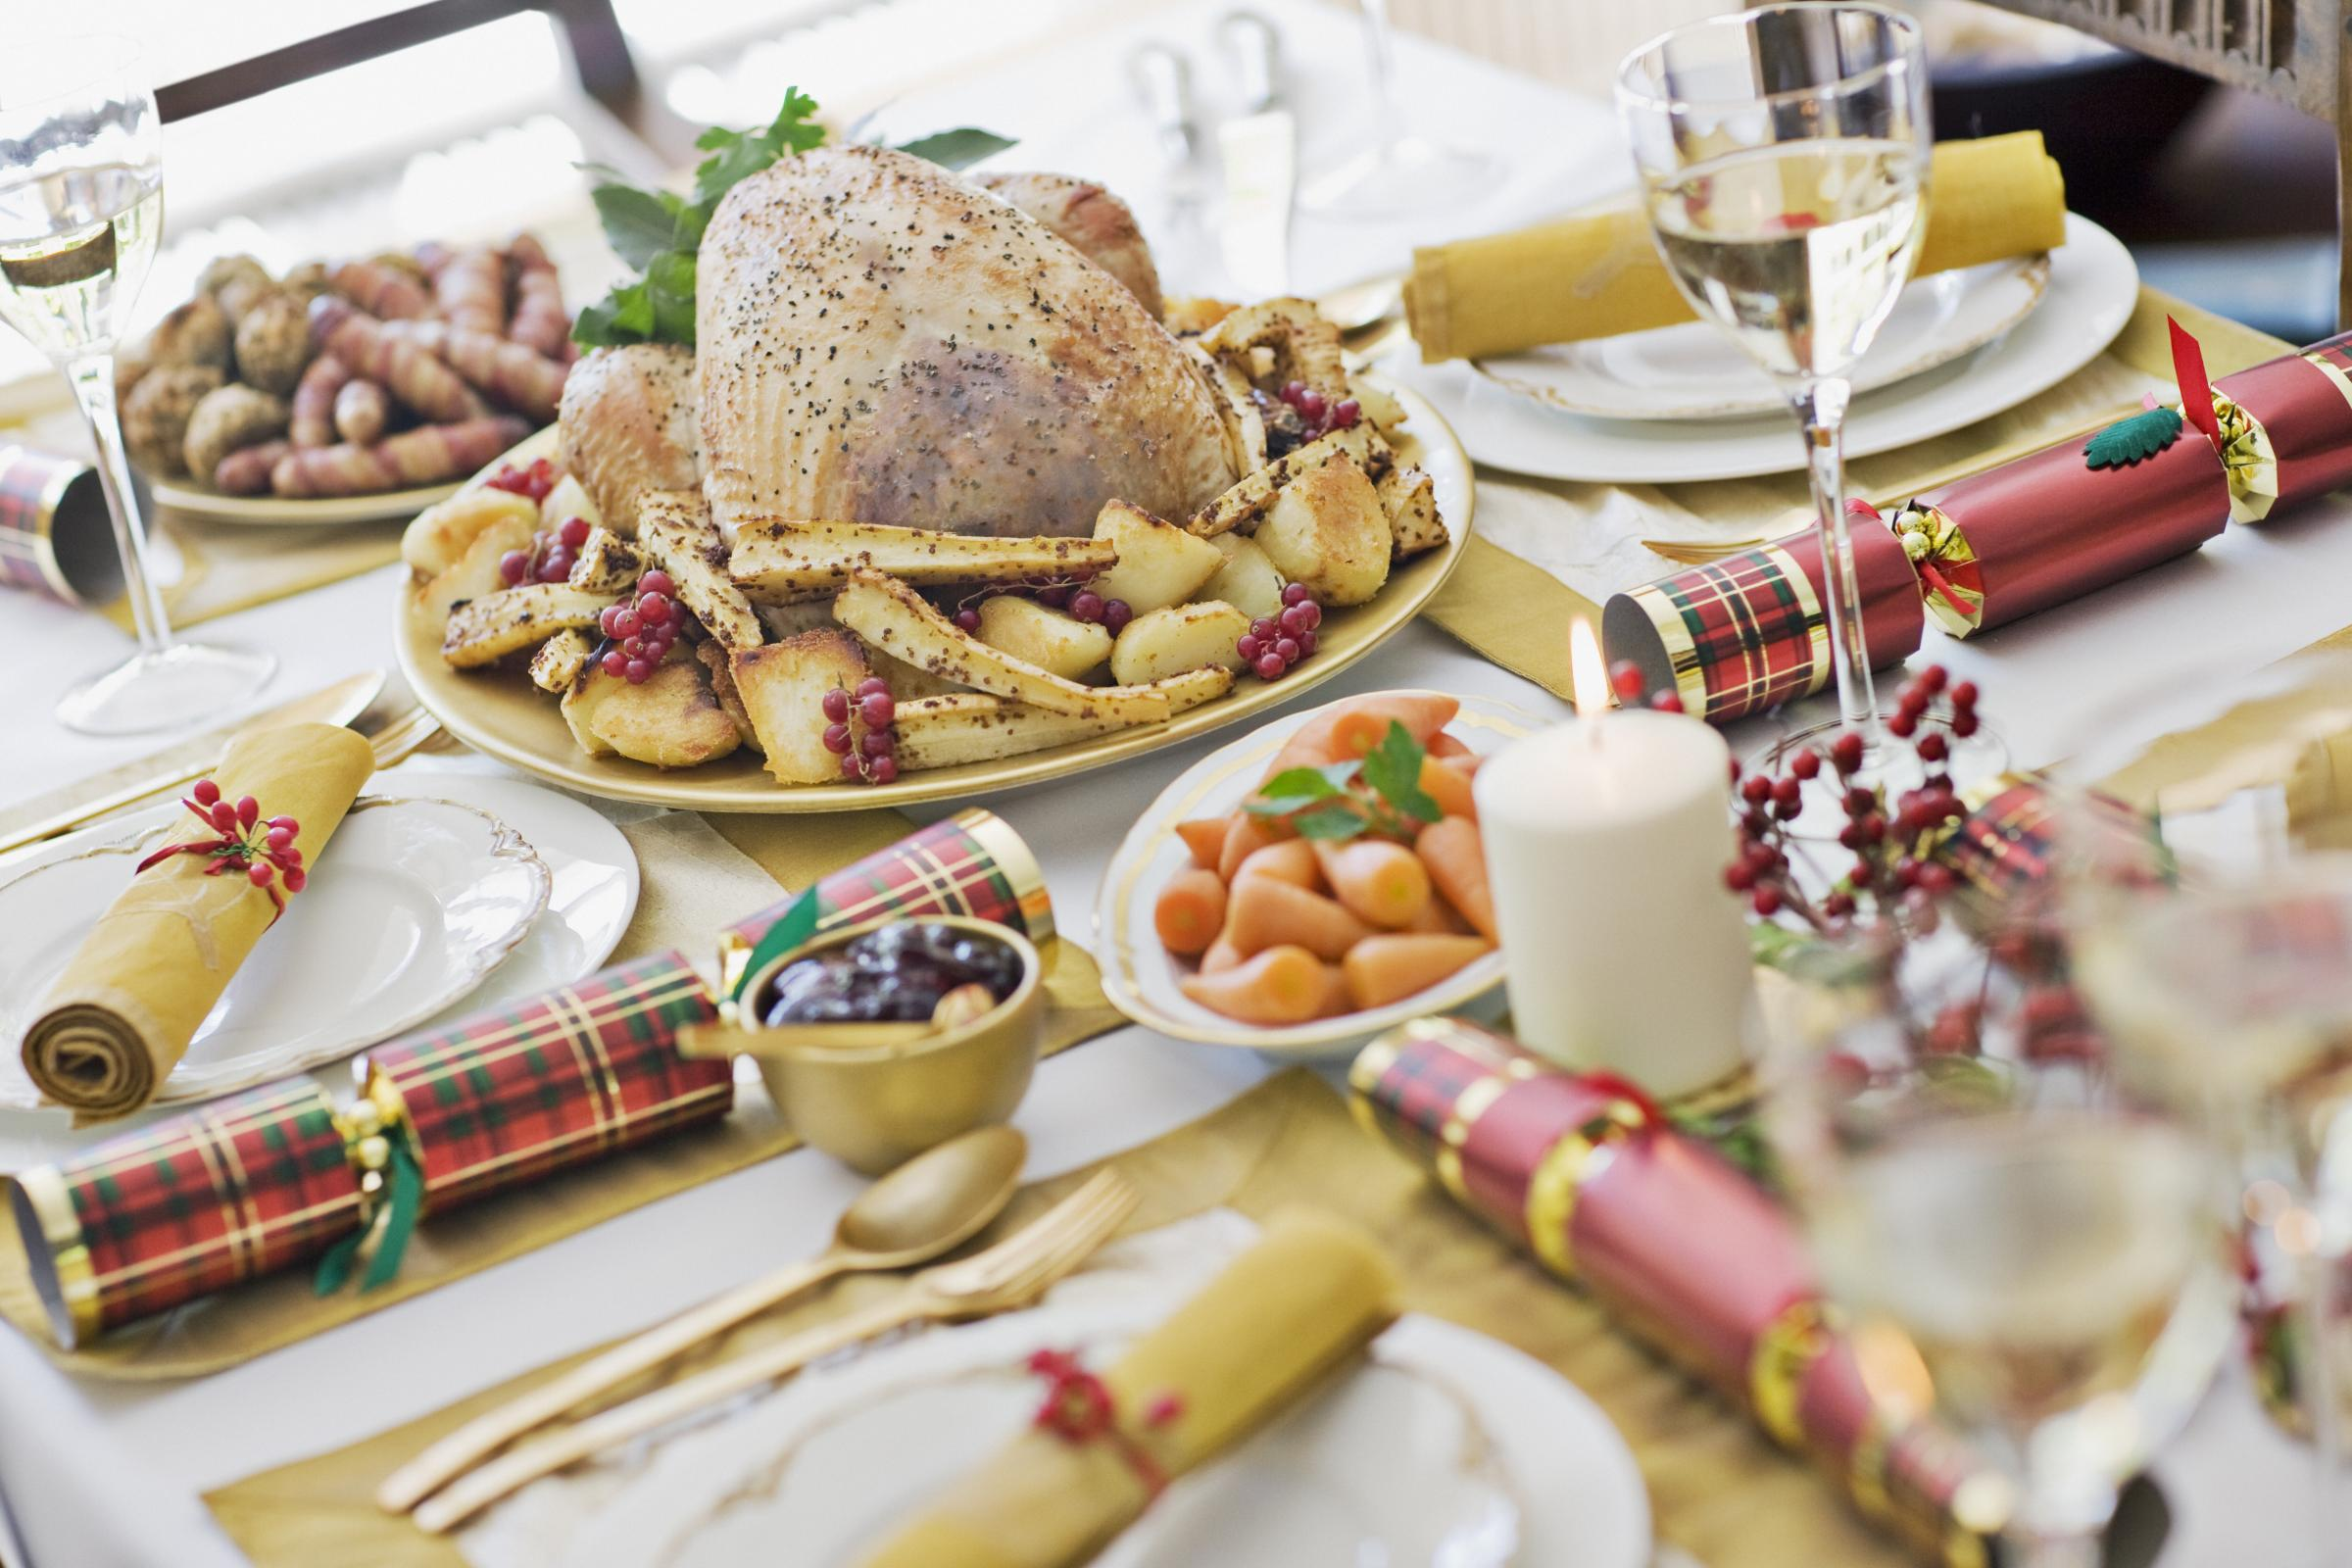 READER LETTER: Here's why you should go vegan or vegetarian for Christmas dinner